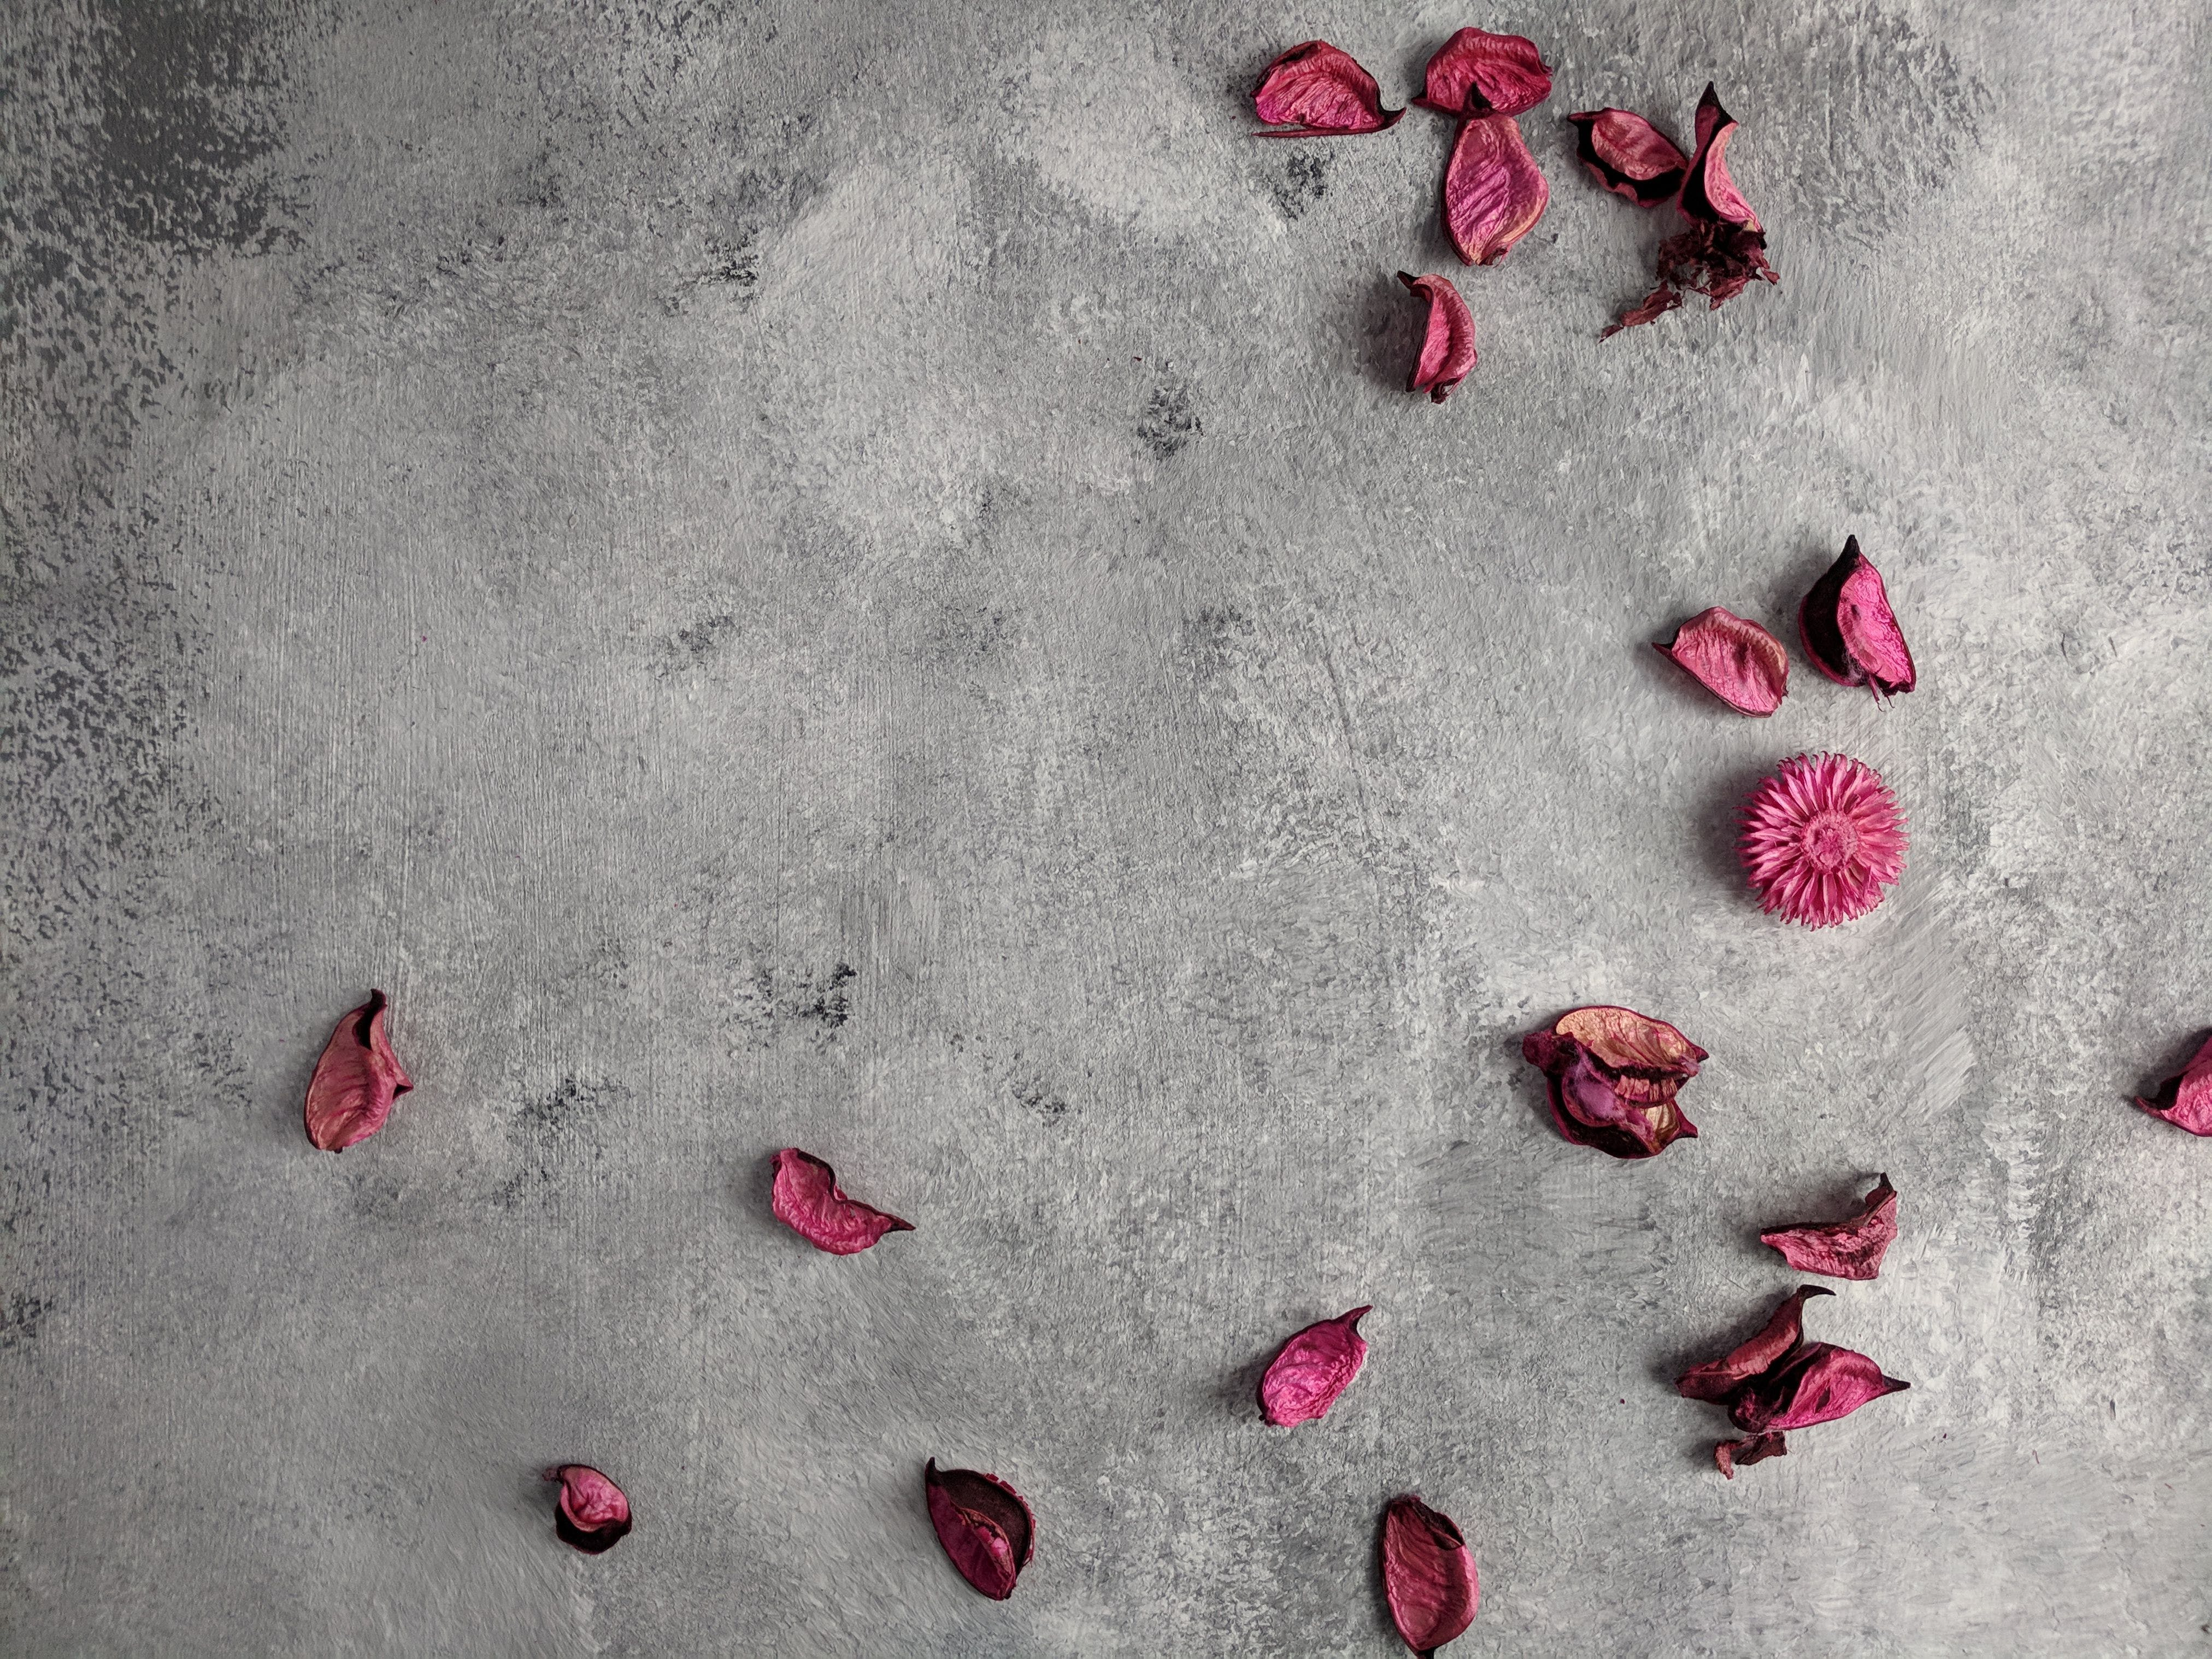 Free stock photo of art background, background, dried petals, petal